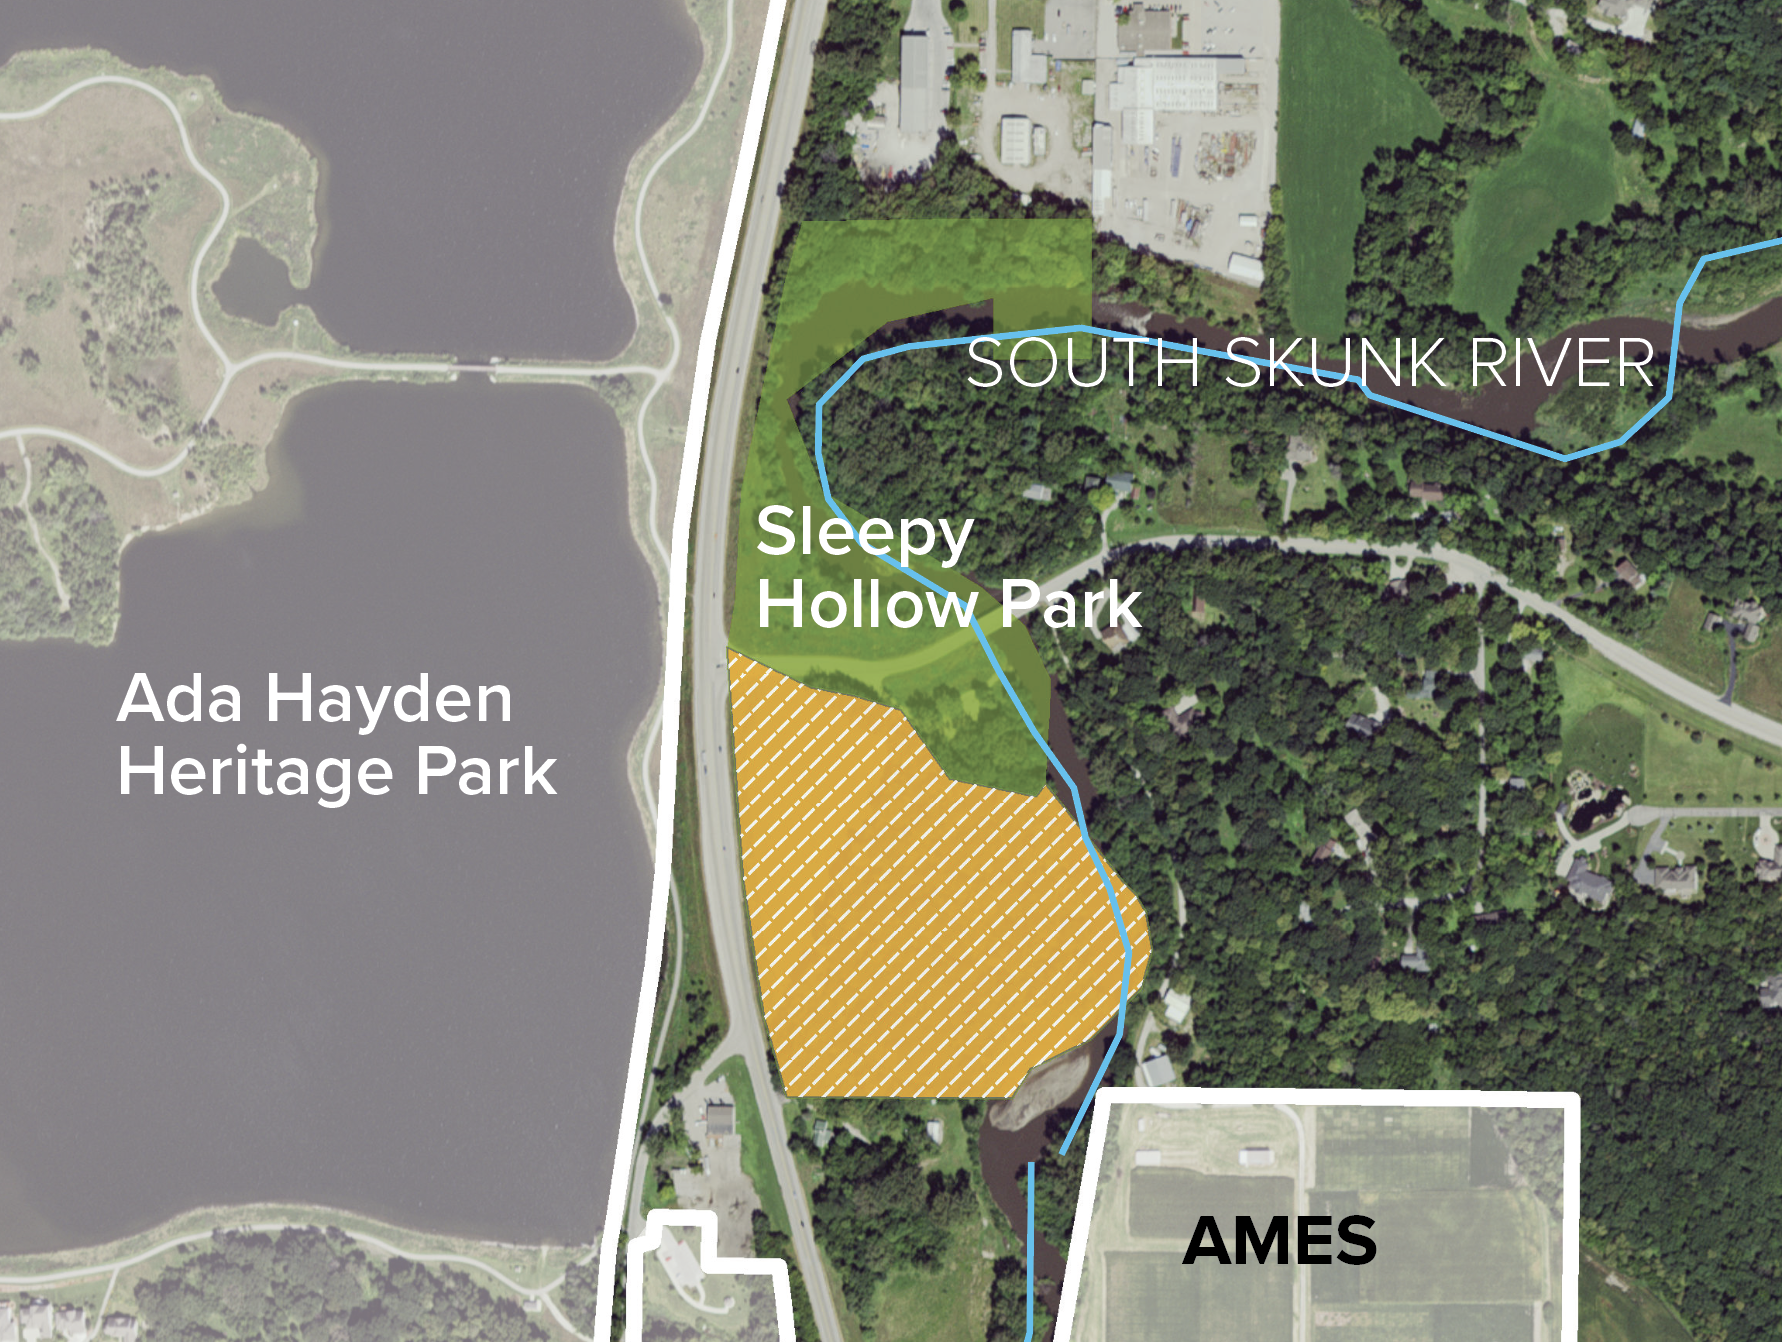 South Skunk River buffered with Sleepy Hollow Park addition in Ames